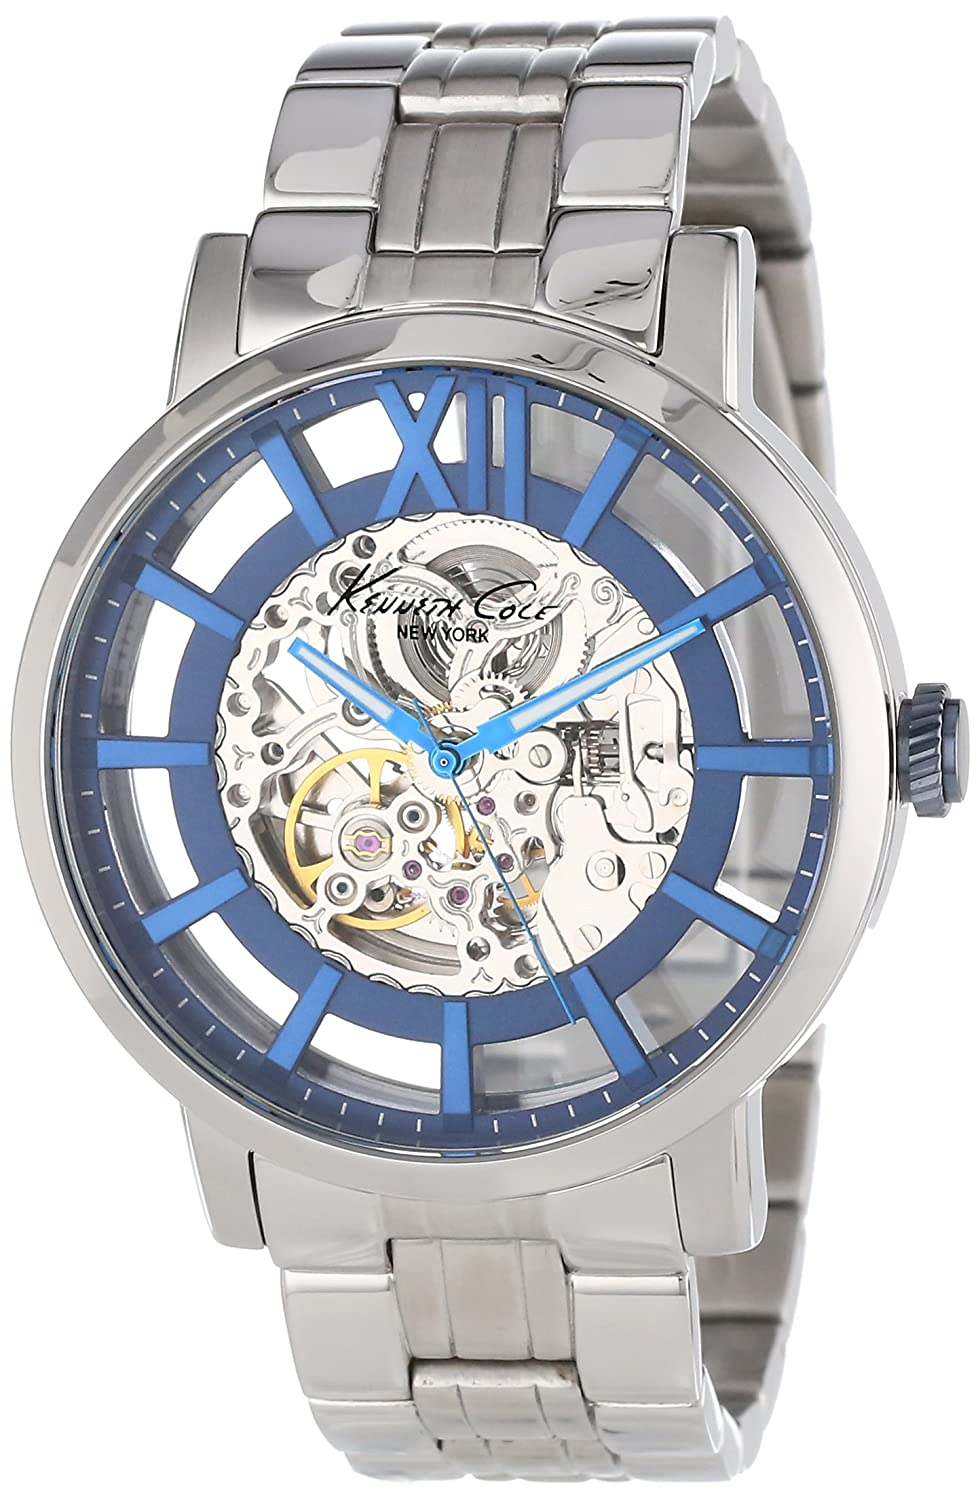 watch onlinesbuys transparent skeleton watches mens stores rolex golden